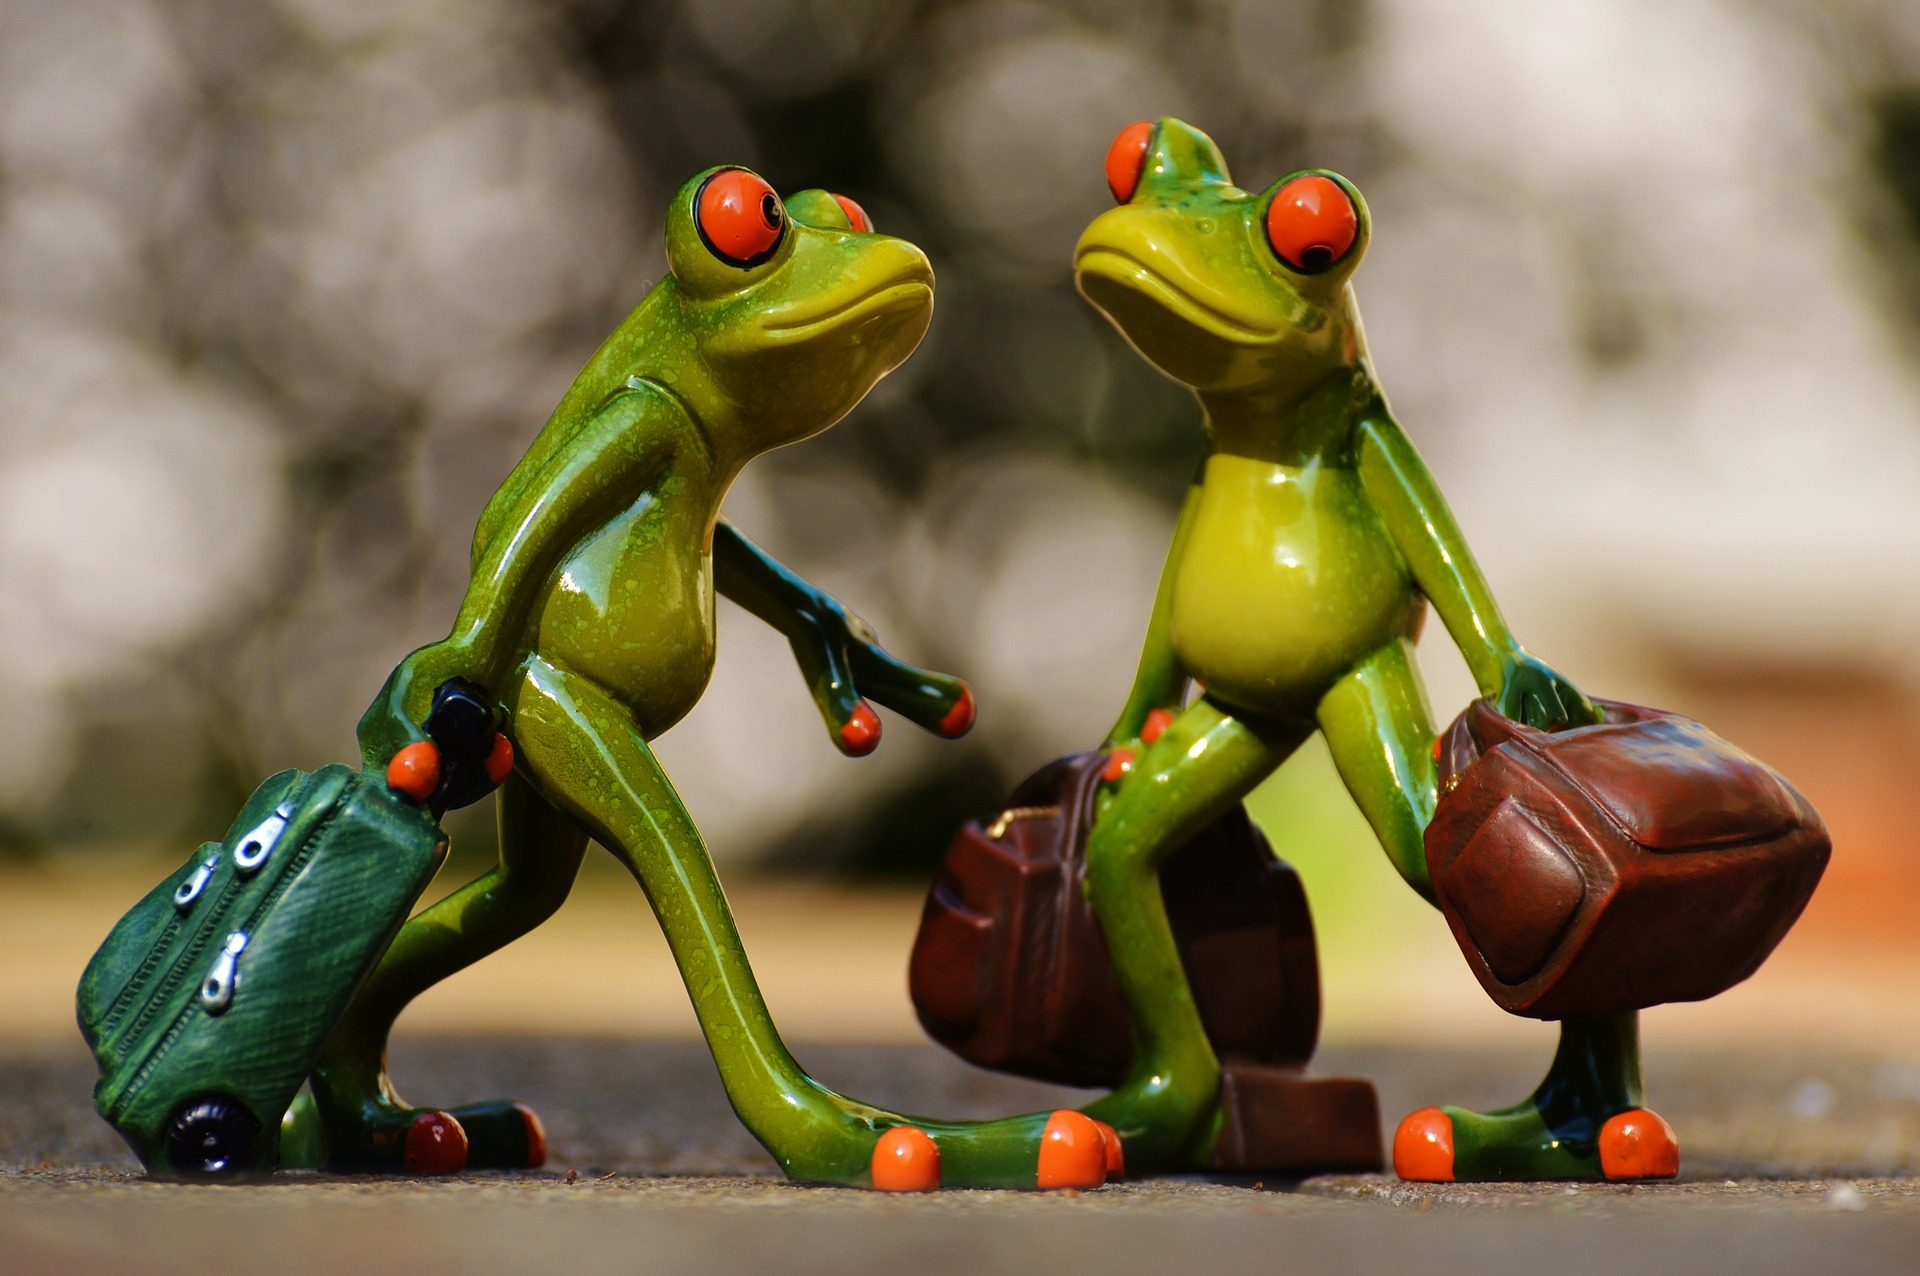 Frogs 897976 1920